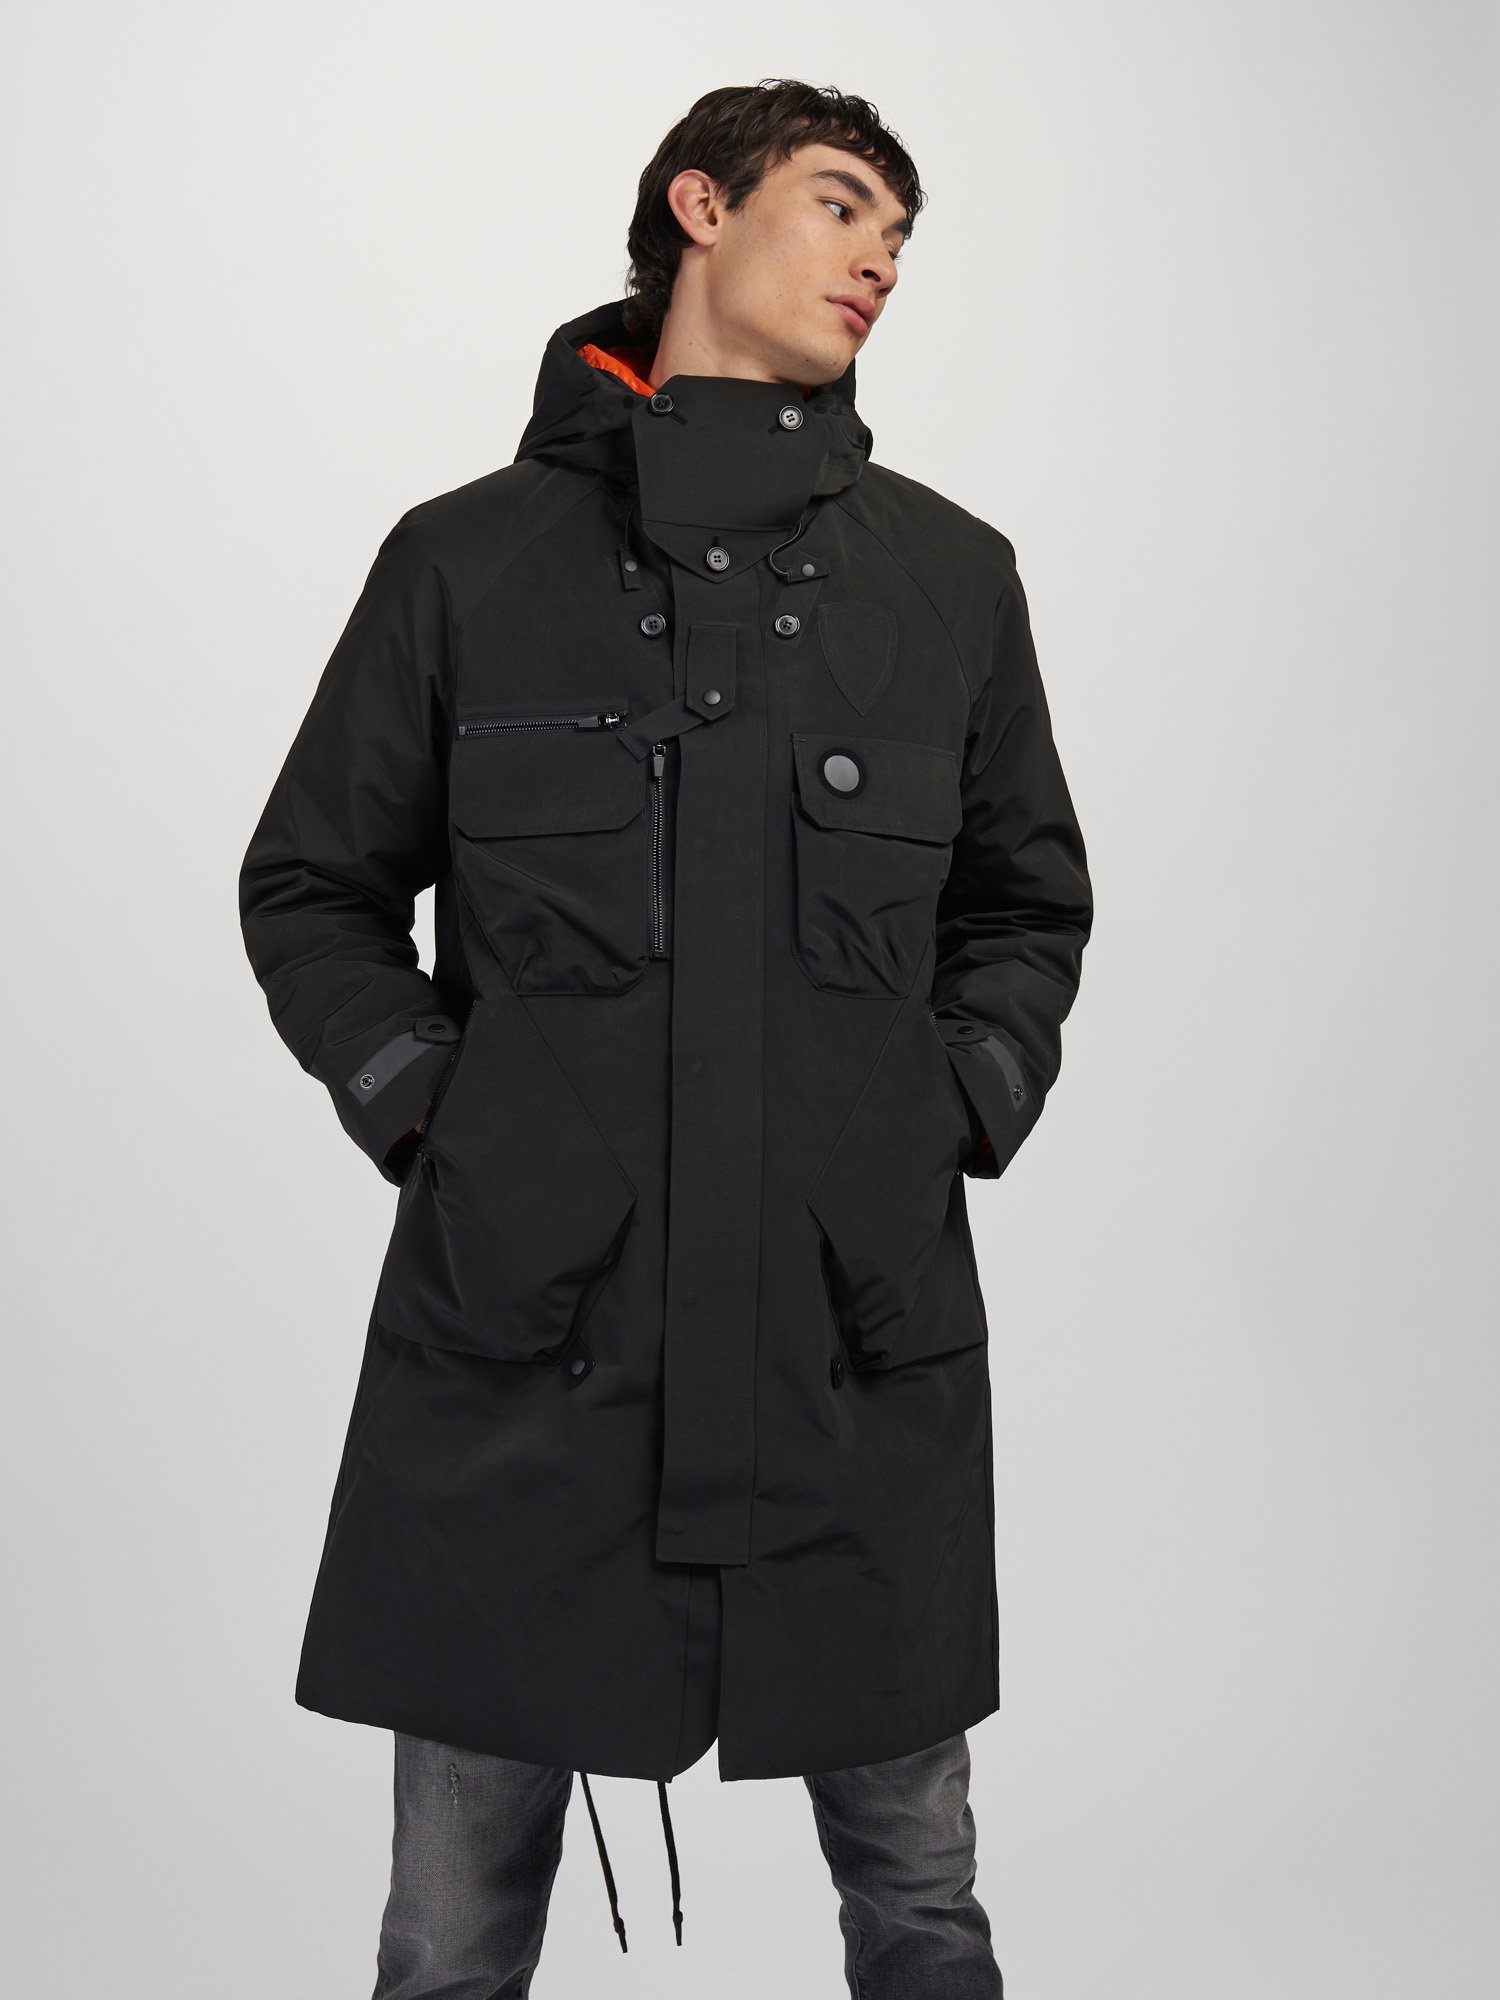 3 LAYER LONG COAT - Blauer